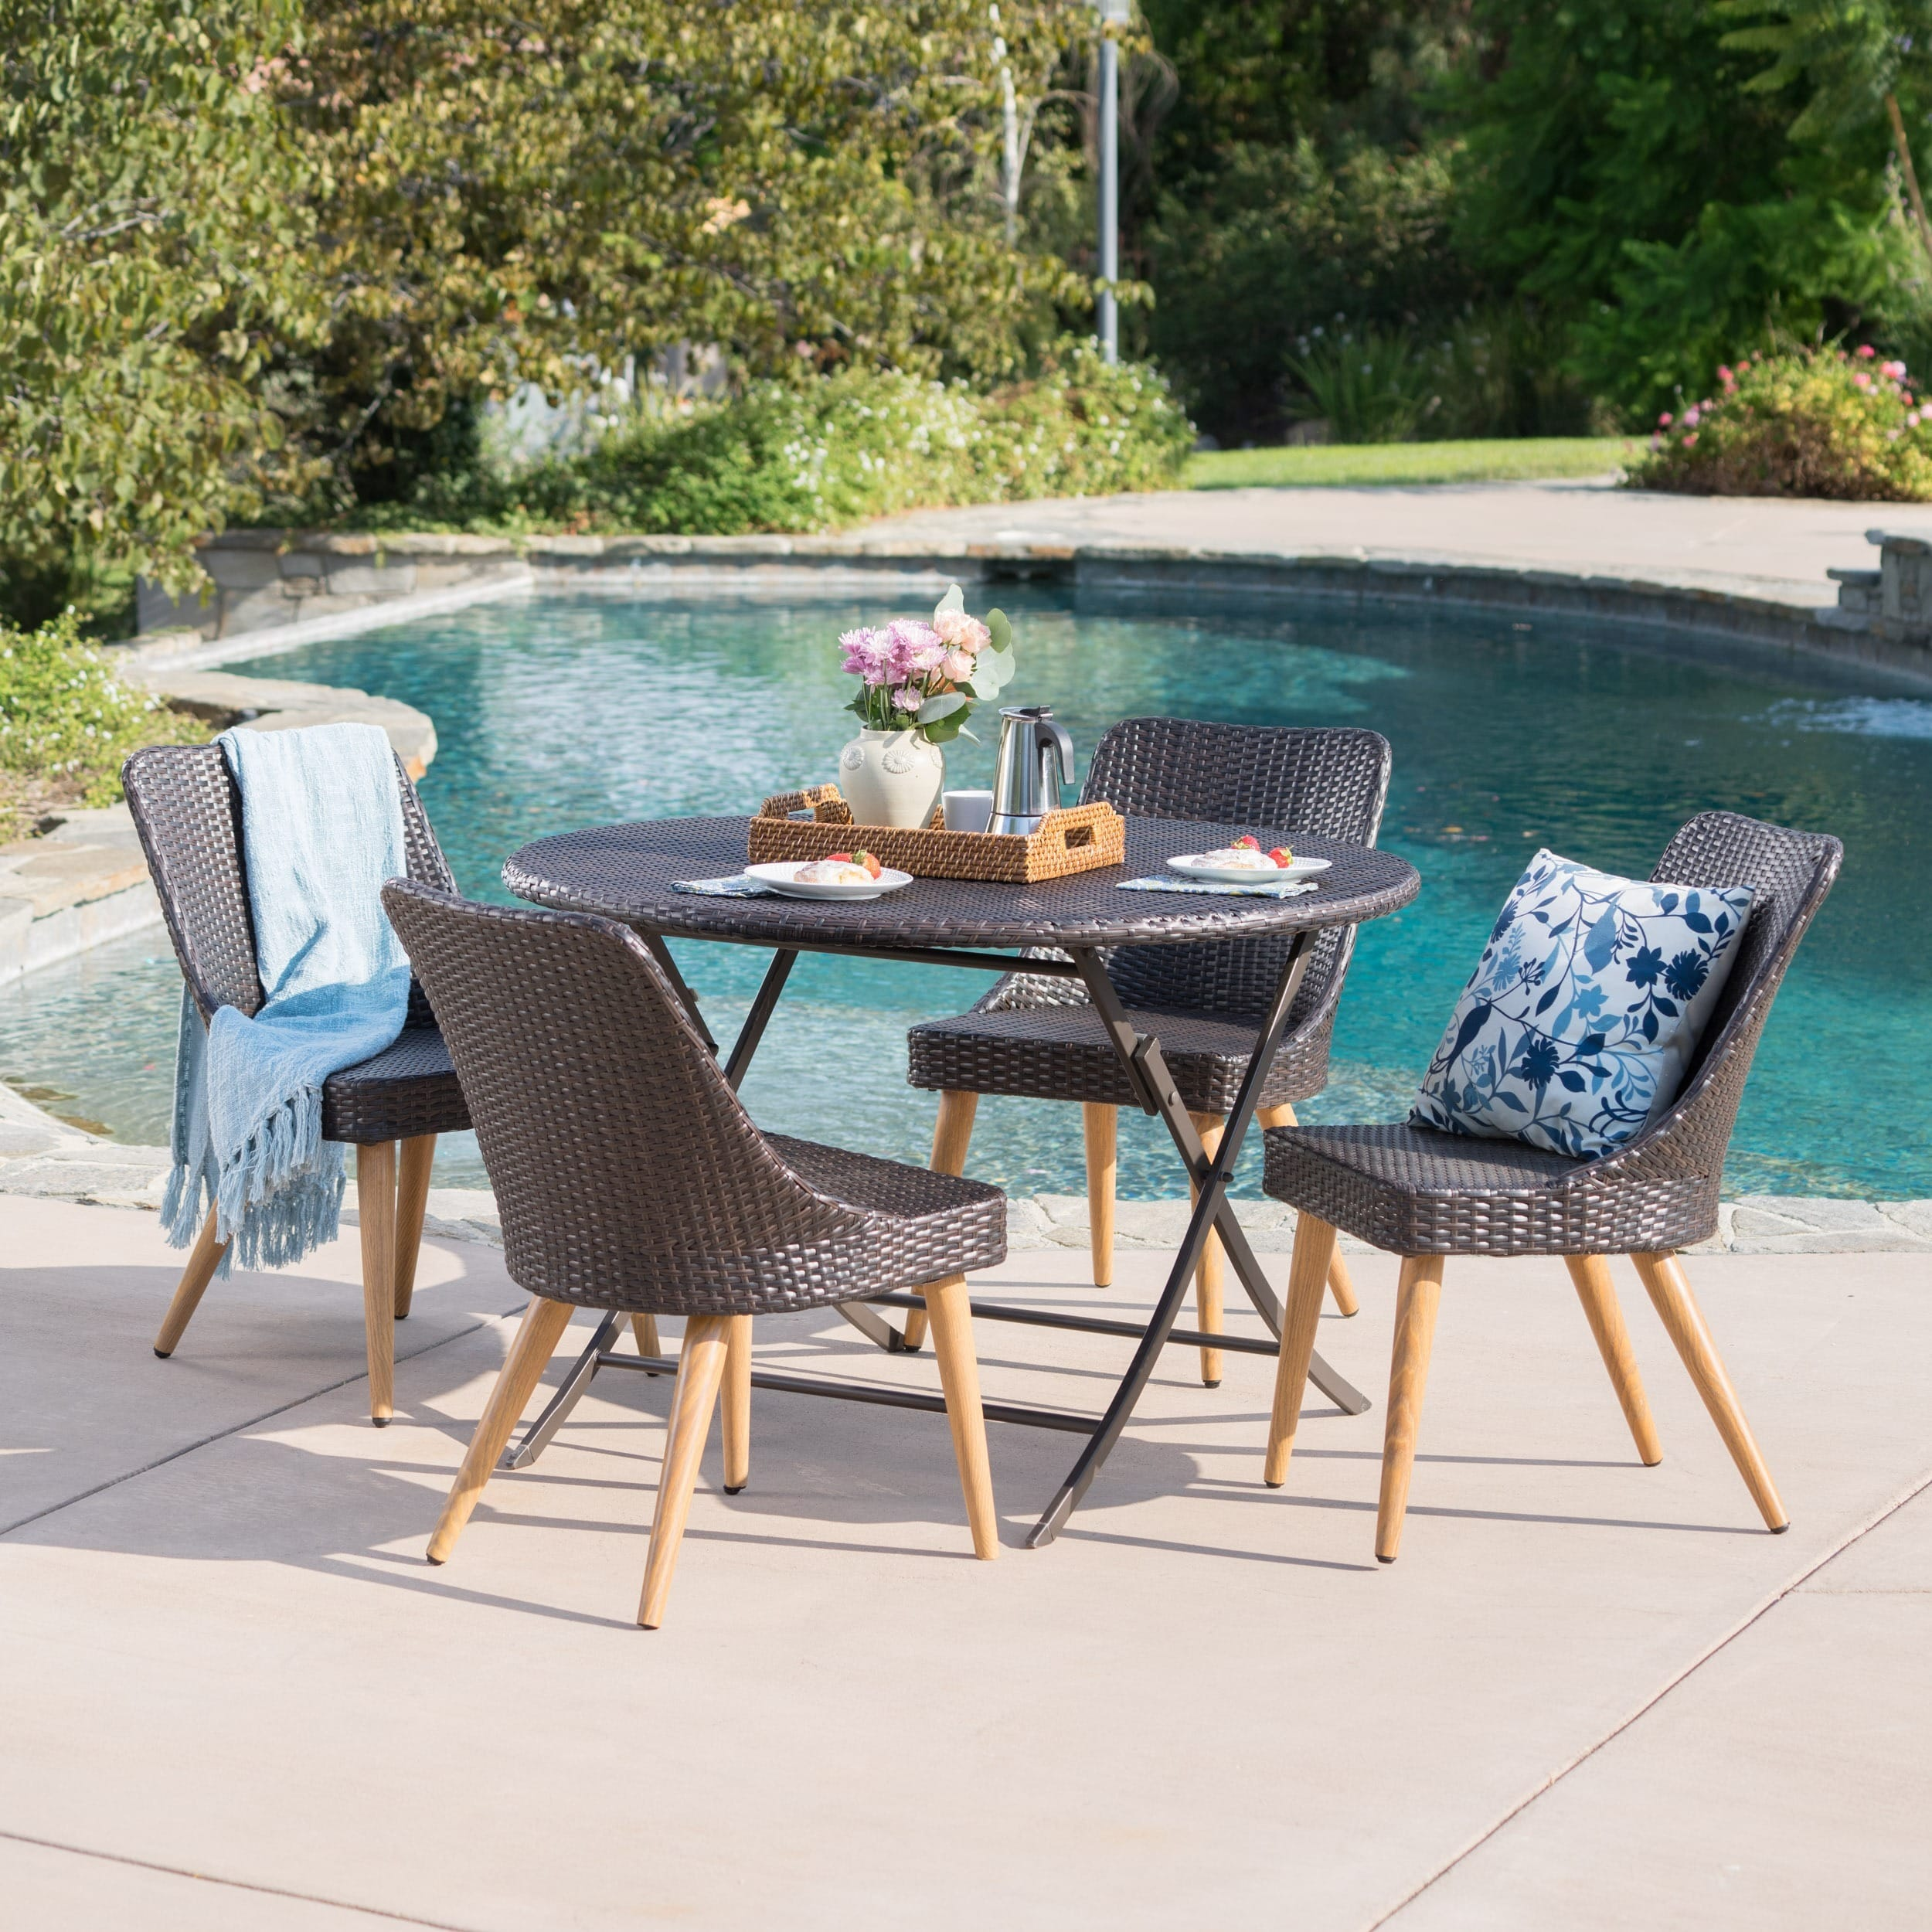 Christopher Knight Home Opal Outdoor 5-Piece Round Foldable Wicker Dining Set with Umbrella Hole by